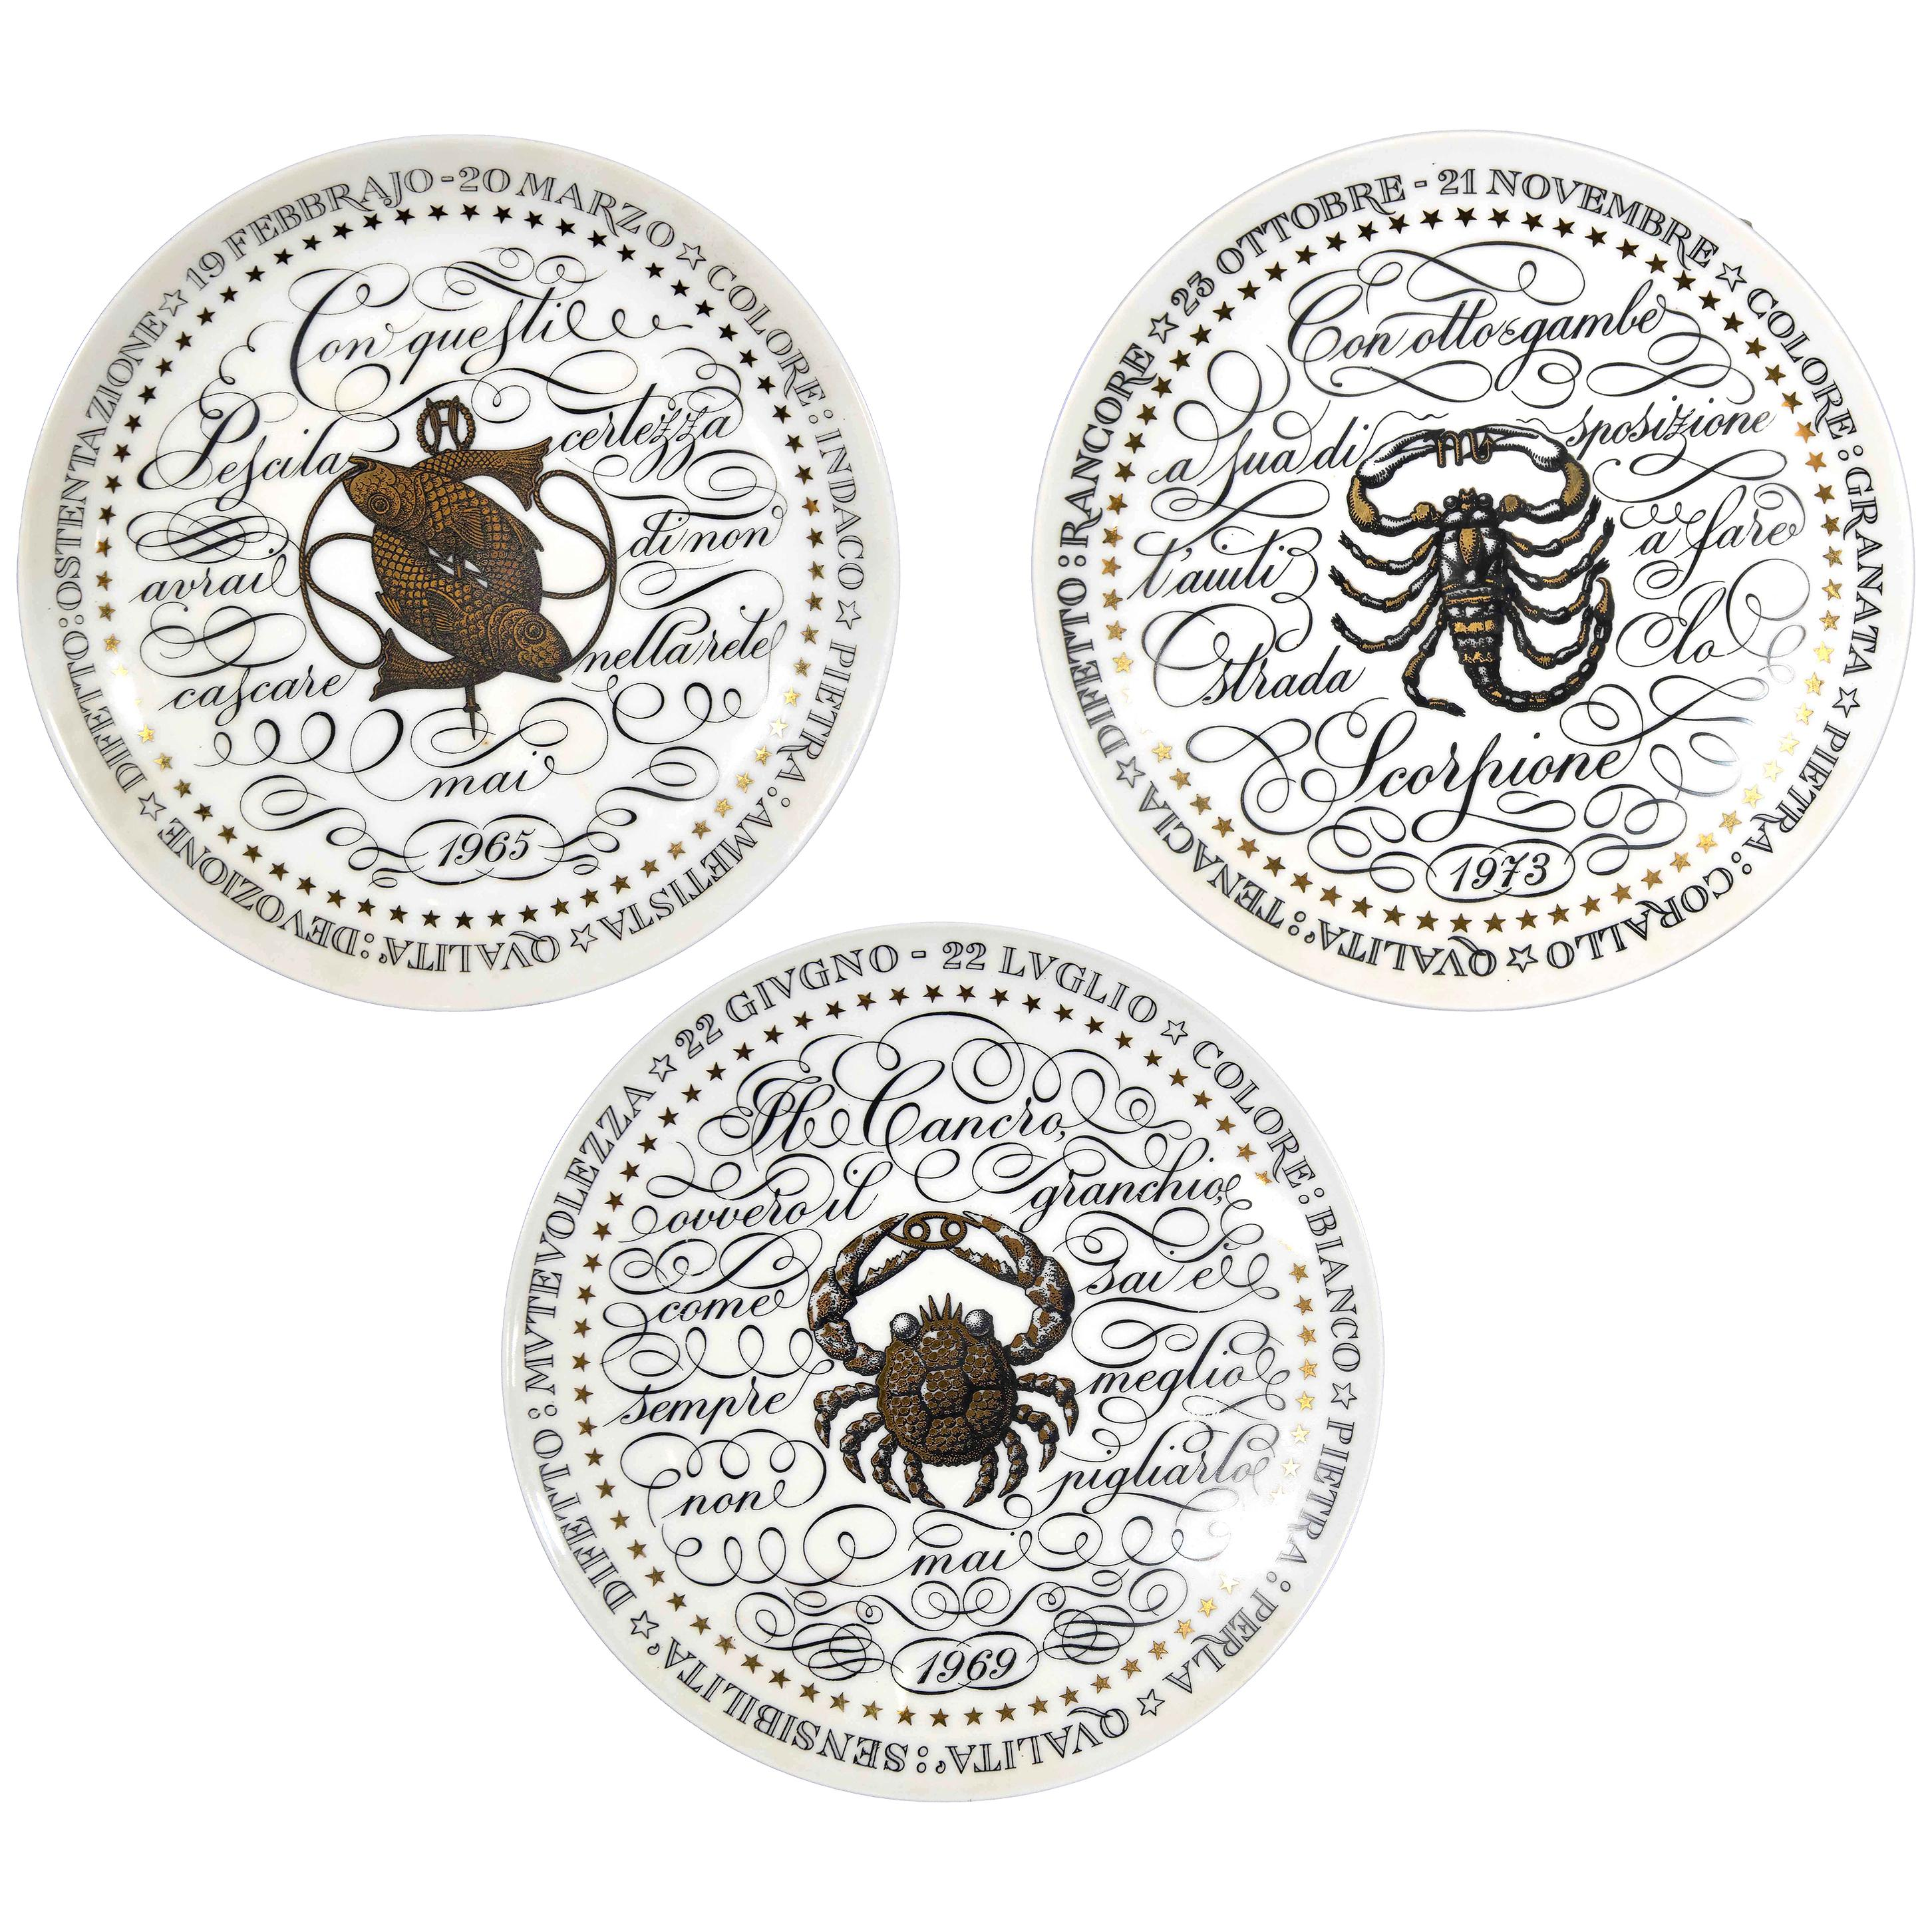 Water Signs, Set of 3 Plates from Zodiac Plate Series by P. Fornasetti, 1965